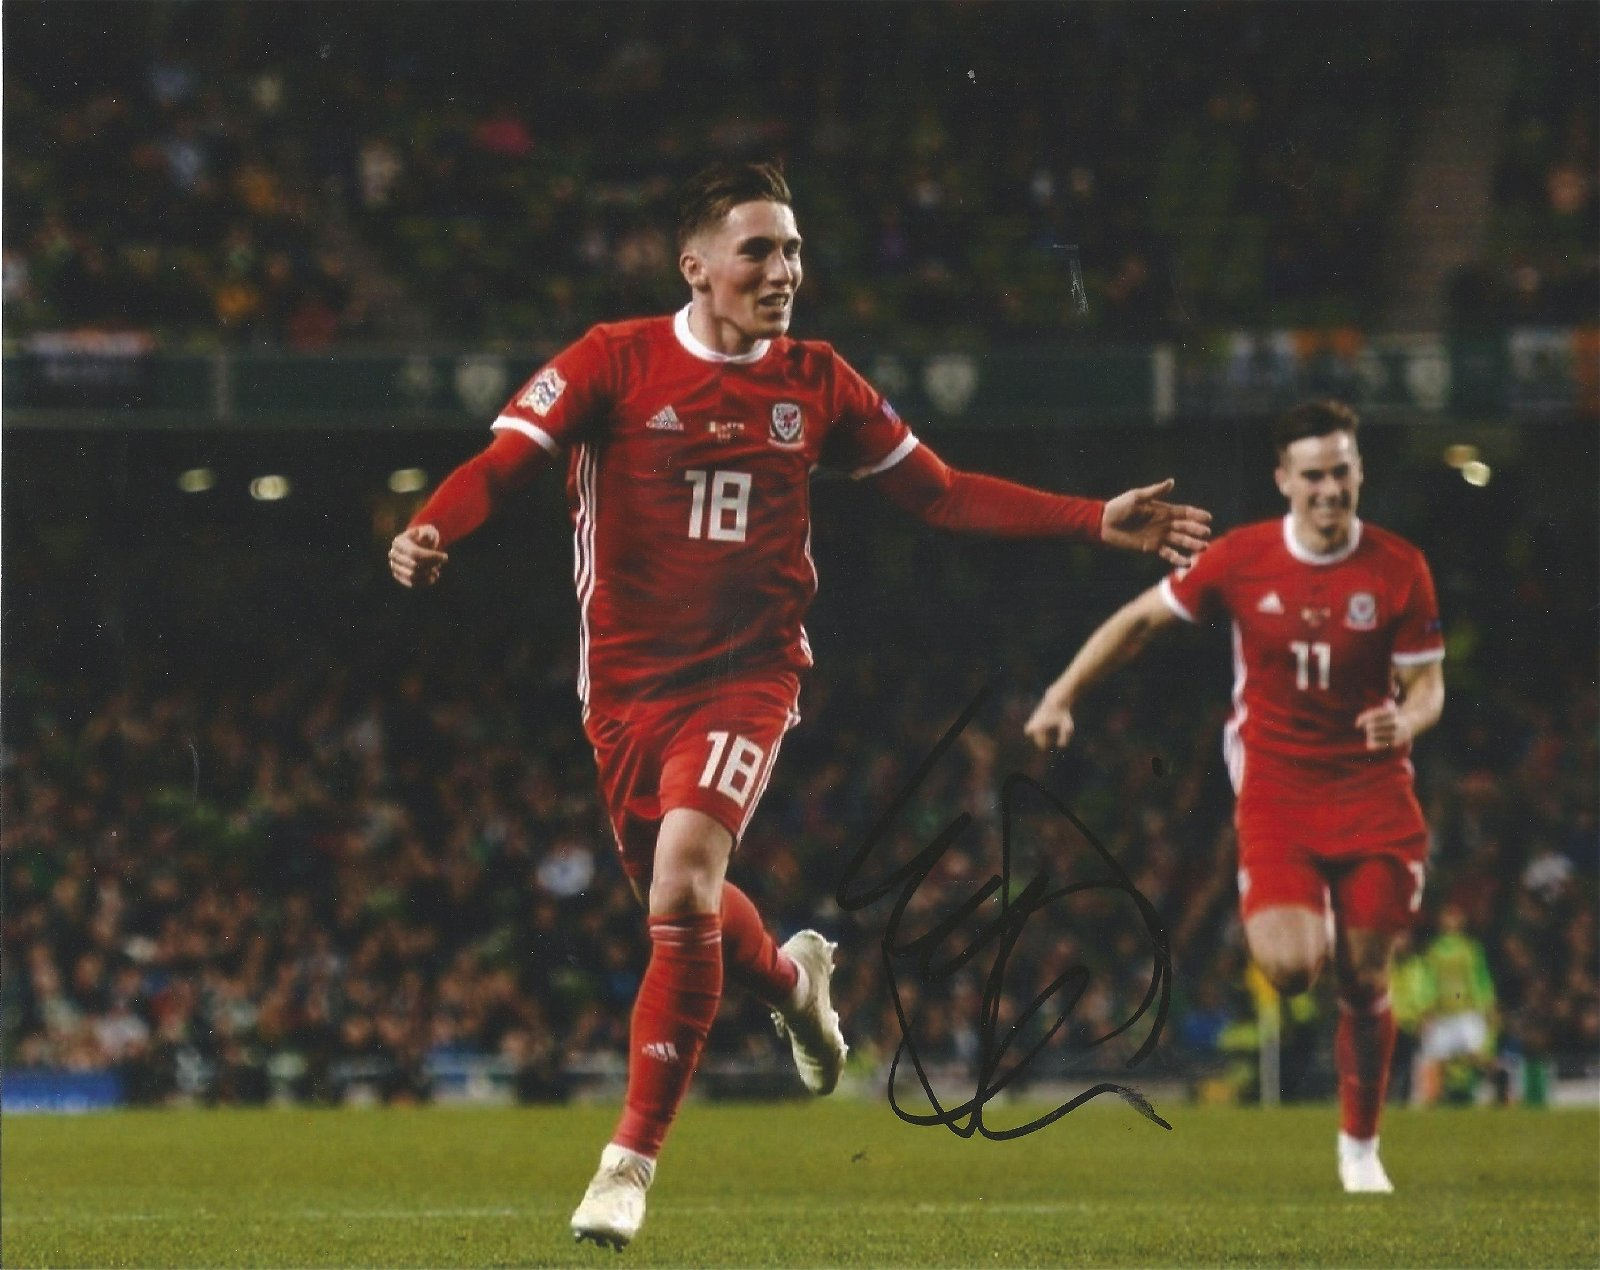 Harry Wilson Signed Wales 8x10 Photo . Good Condition.